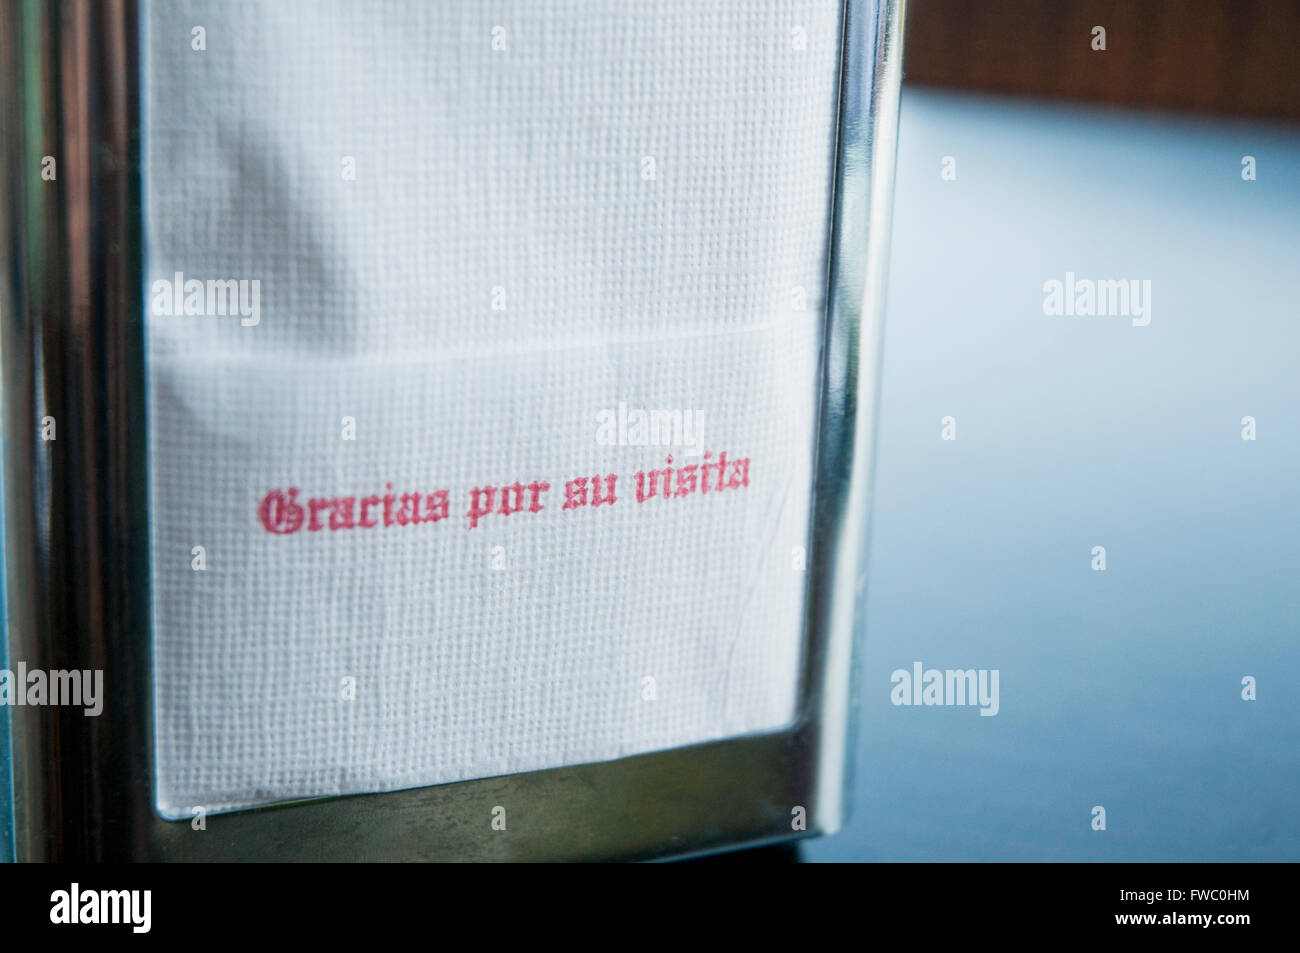 Thanks for your visit. Paper napkin. Spain. - Stock Image